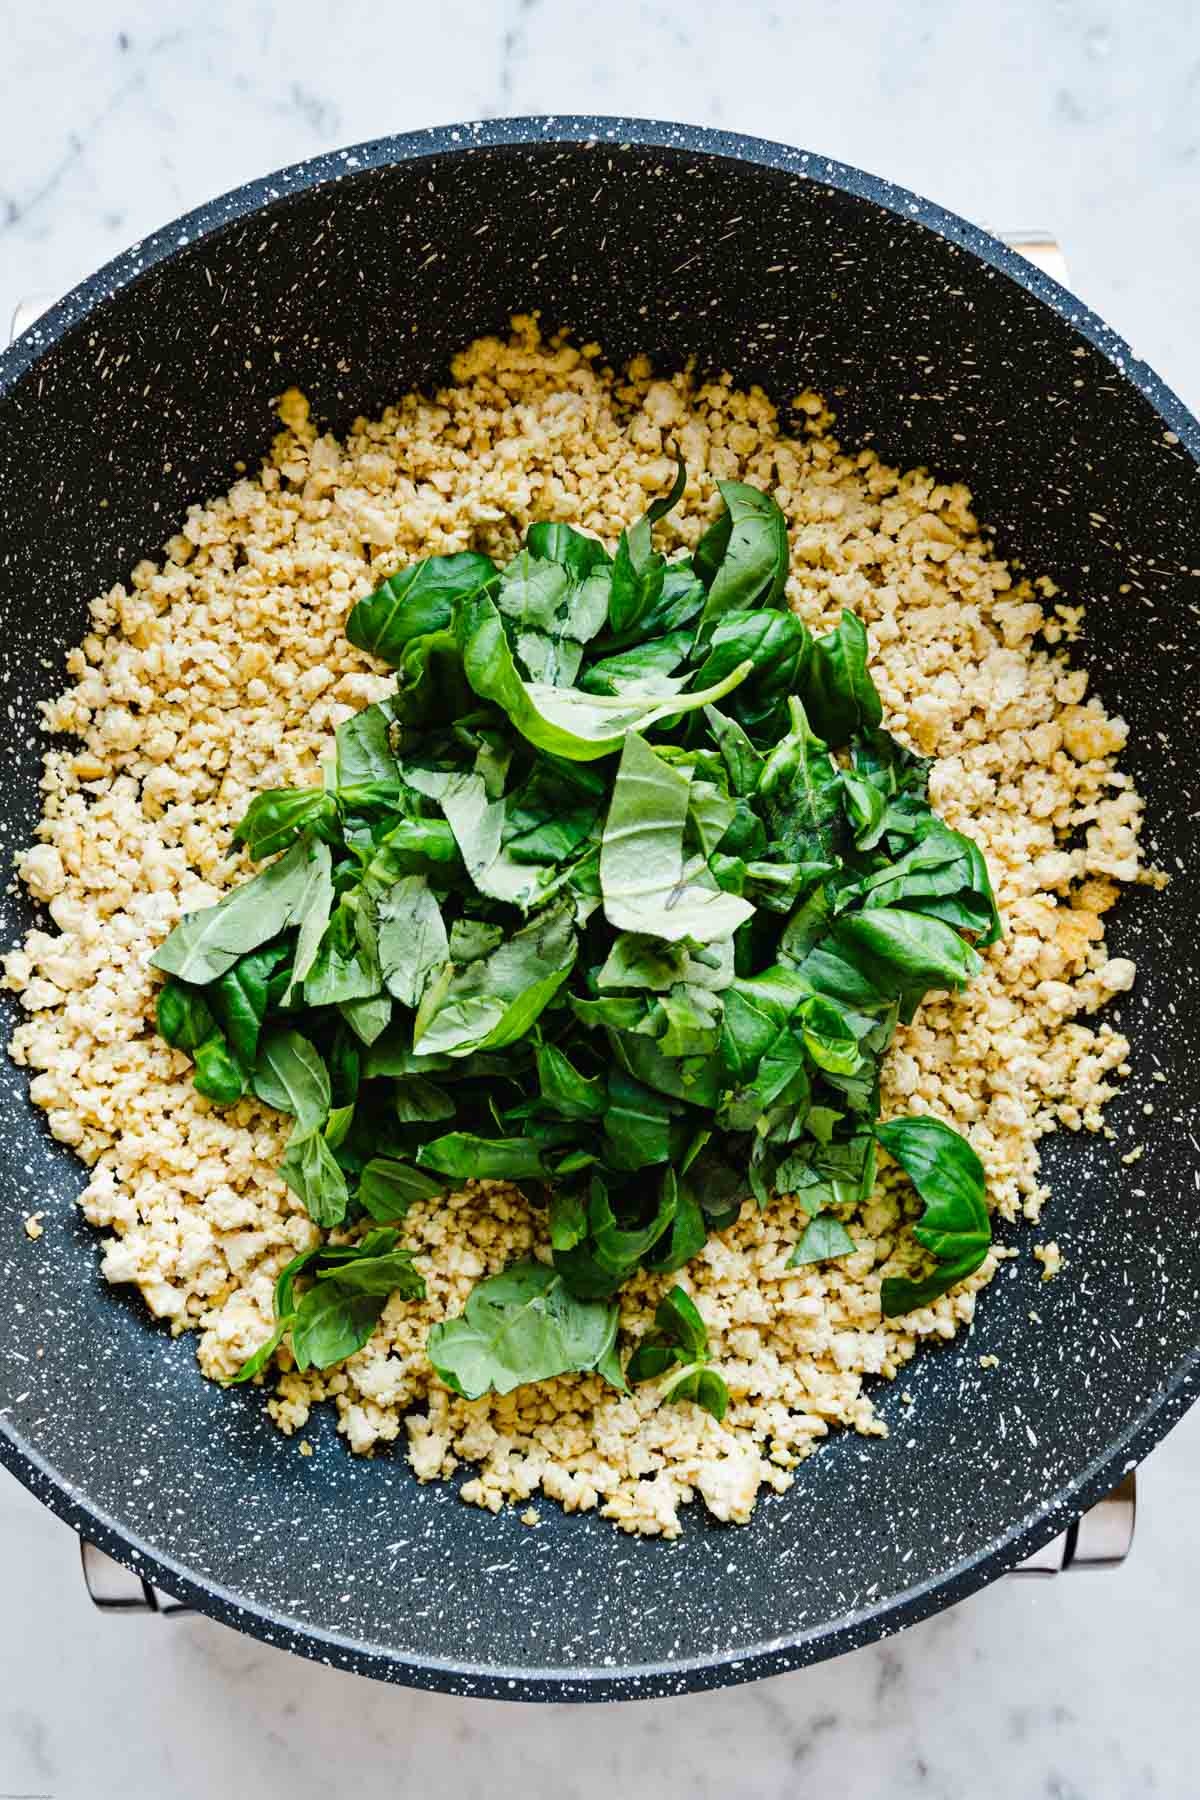 Crumbled tofu with basil in a skillet.